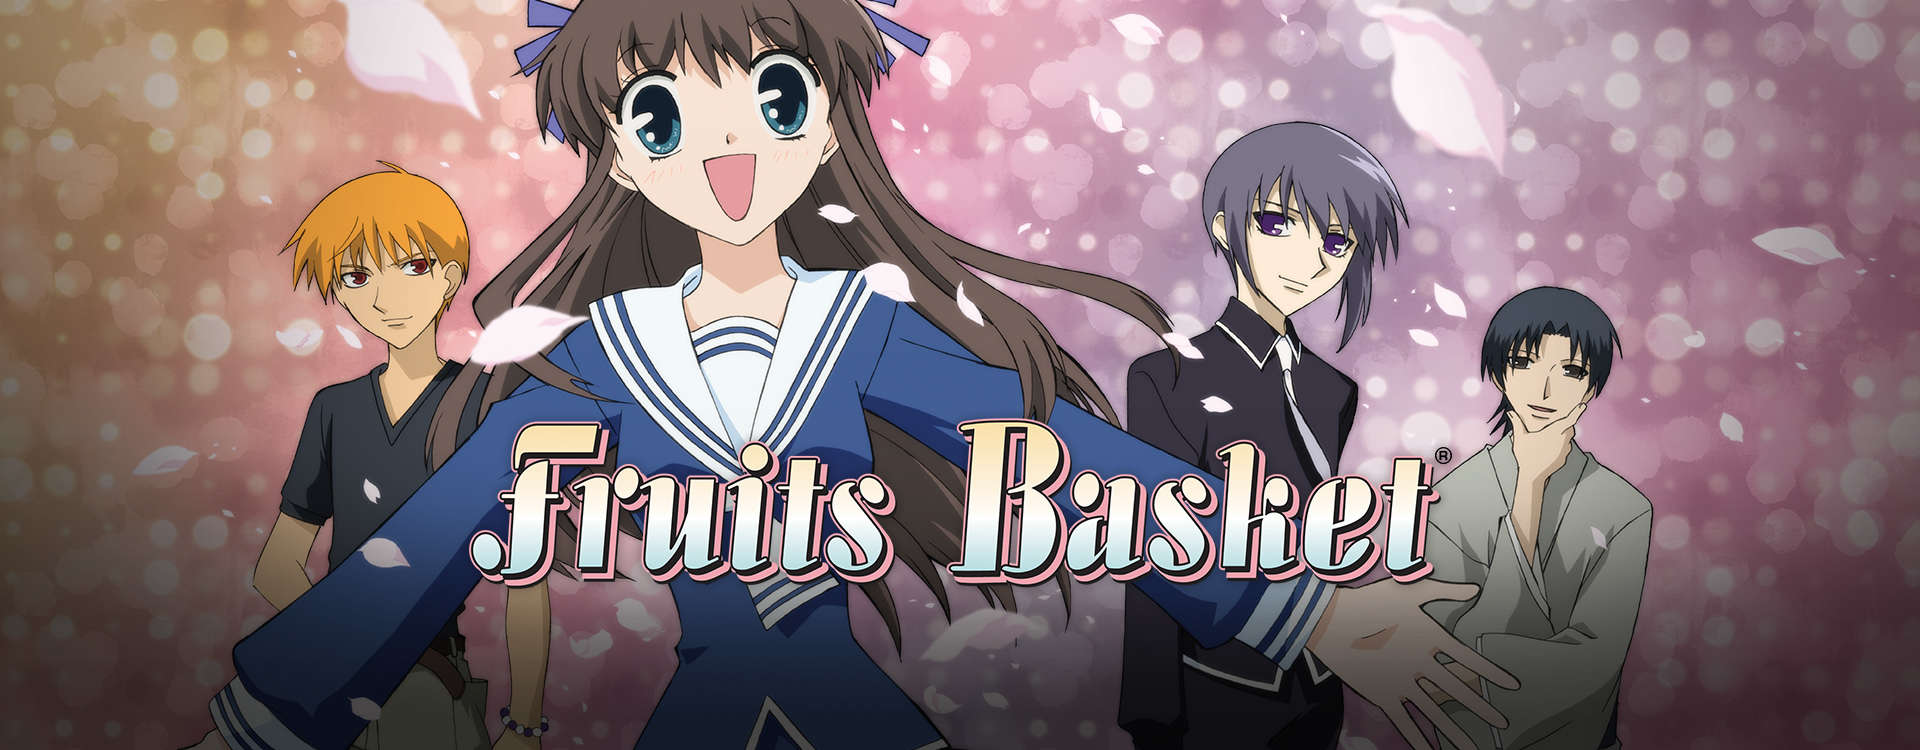 Image result for fruit basket anime